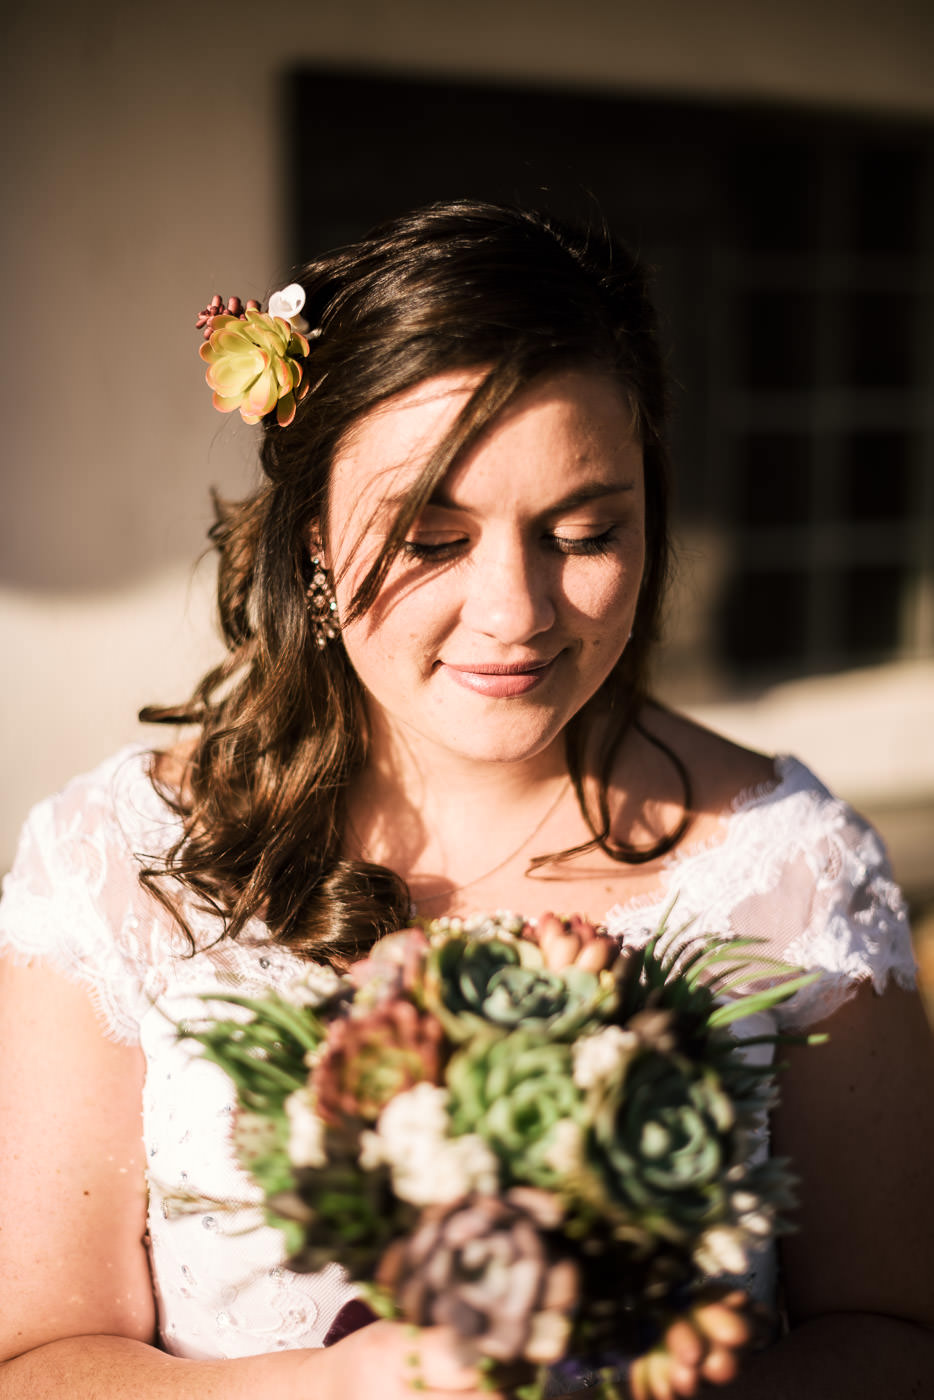 Bride poses with her wedding bouquet before heading to the ceremony.